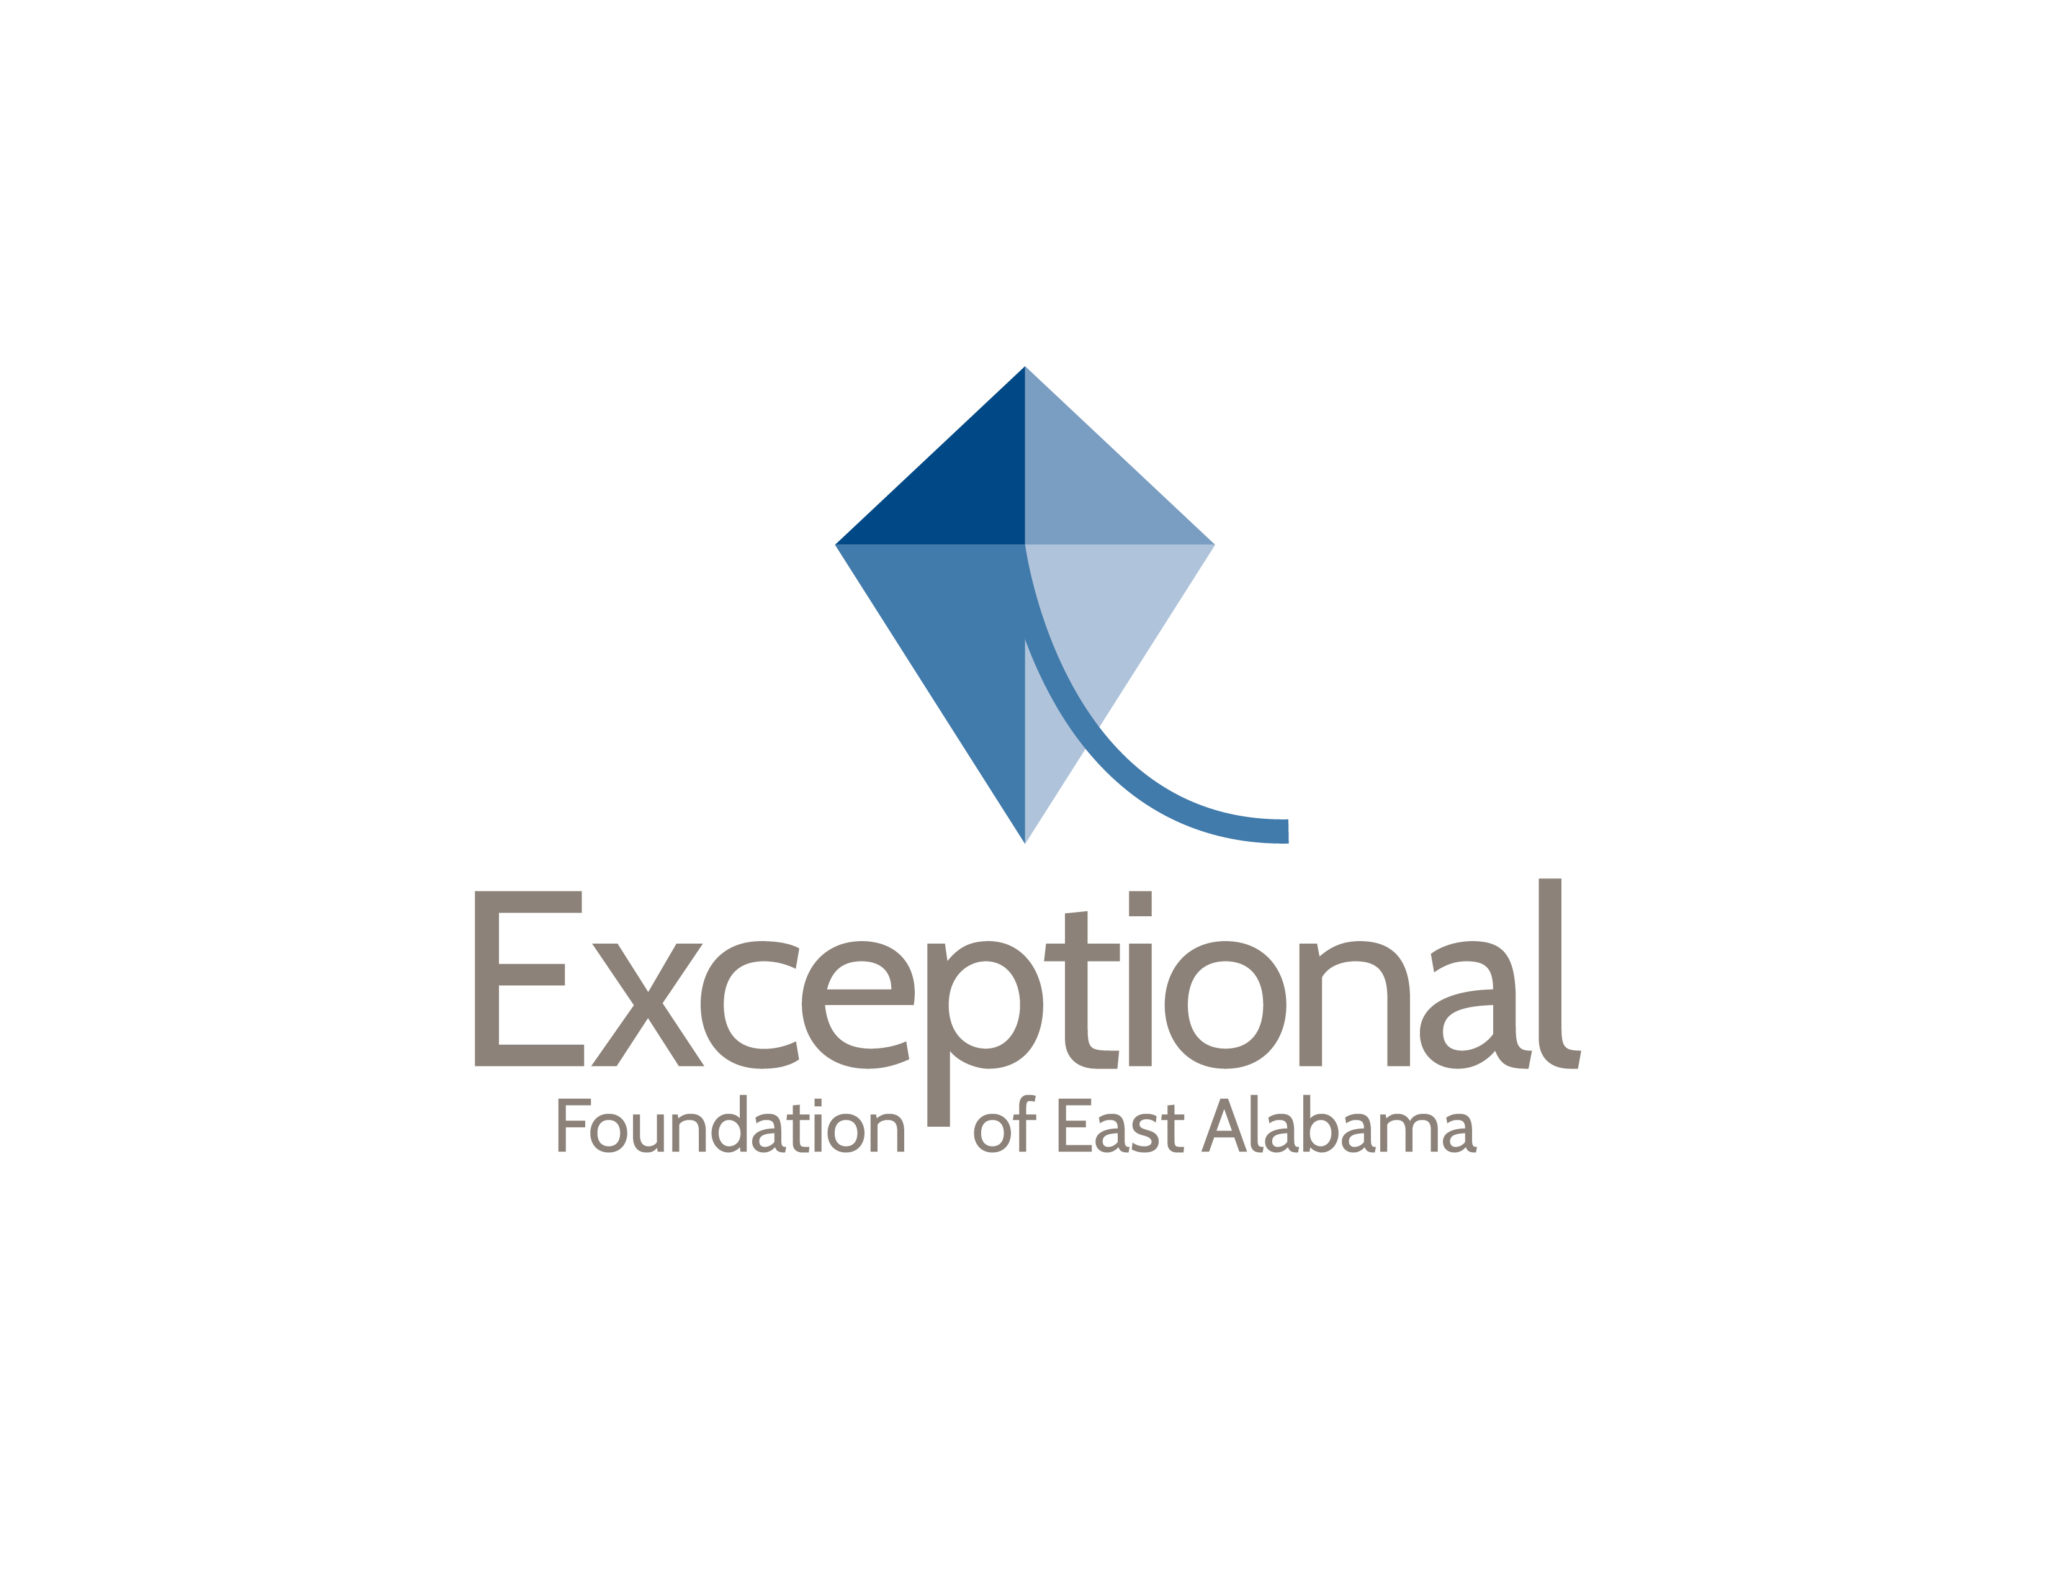 The Exceptional Foundation of East Alabama is a nonprofit organization established to serve individuals with intellectual and developmental disabilities.